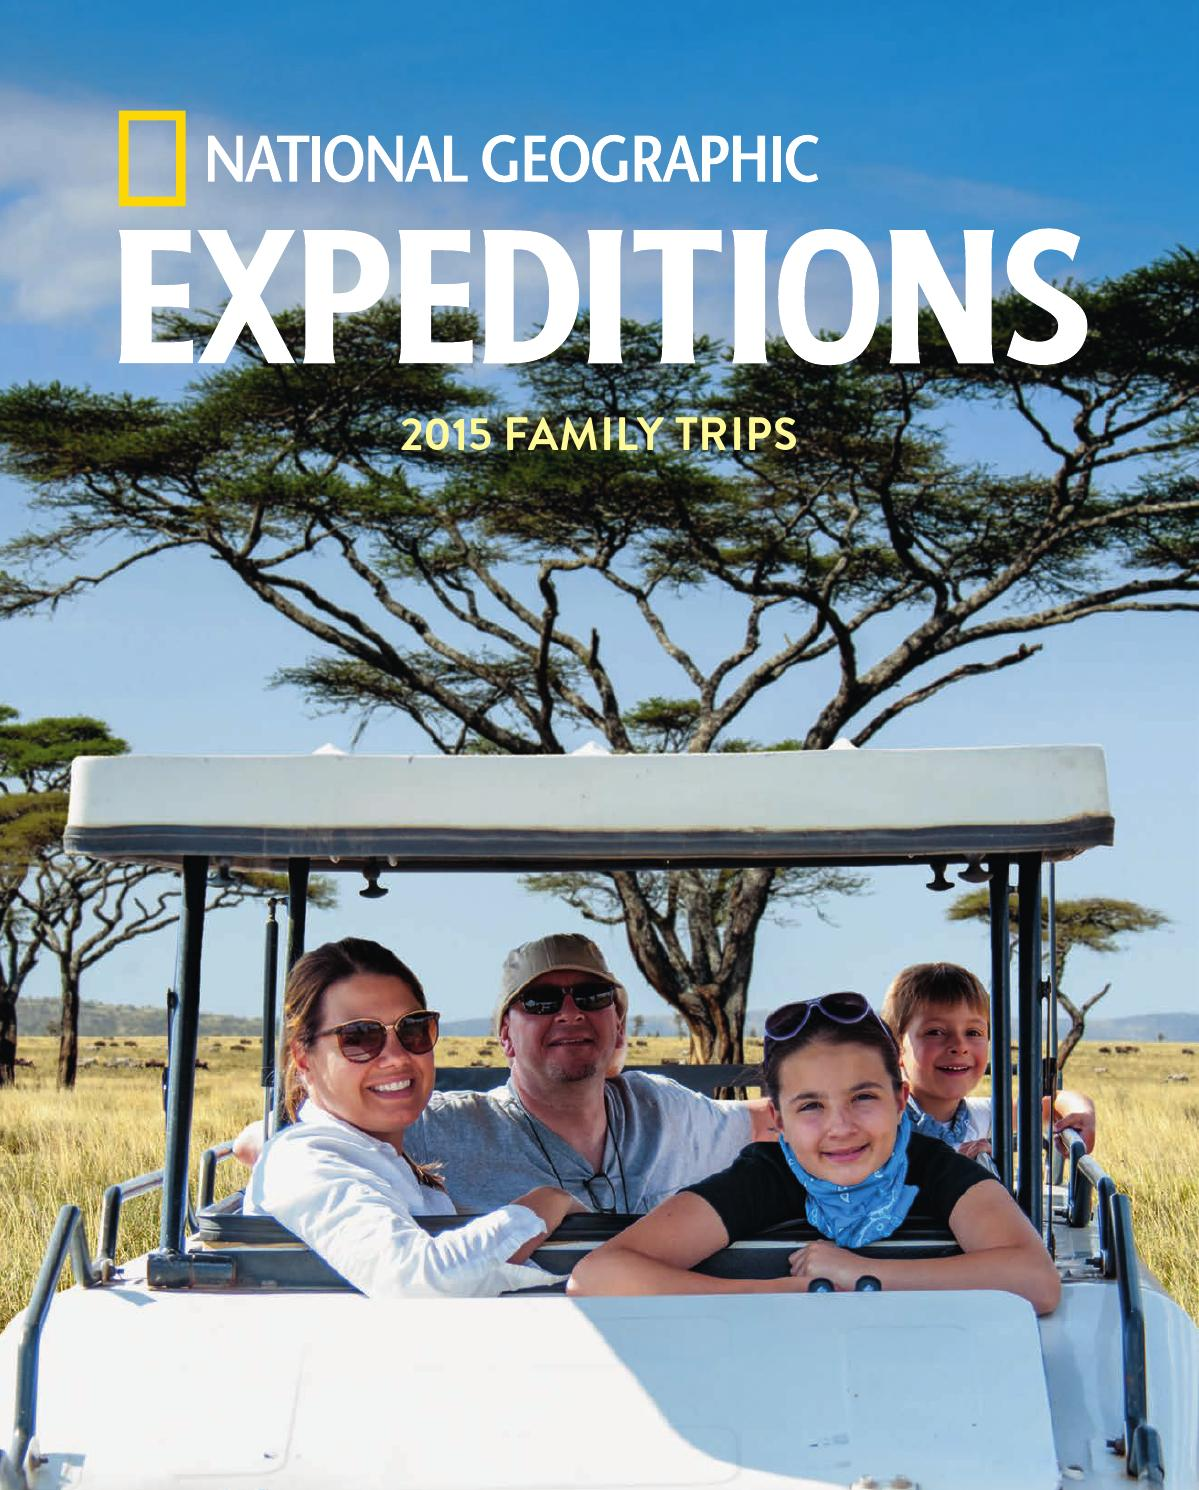 national geographic expeditions like